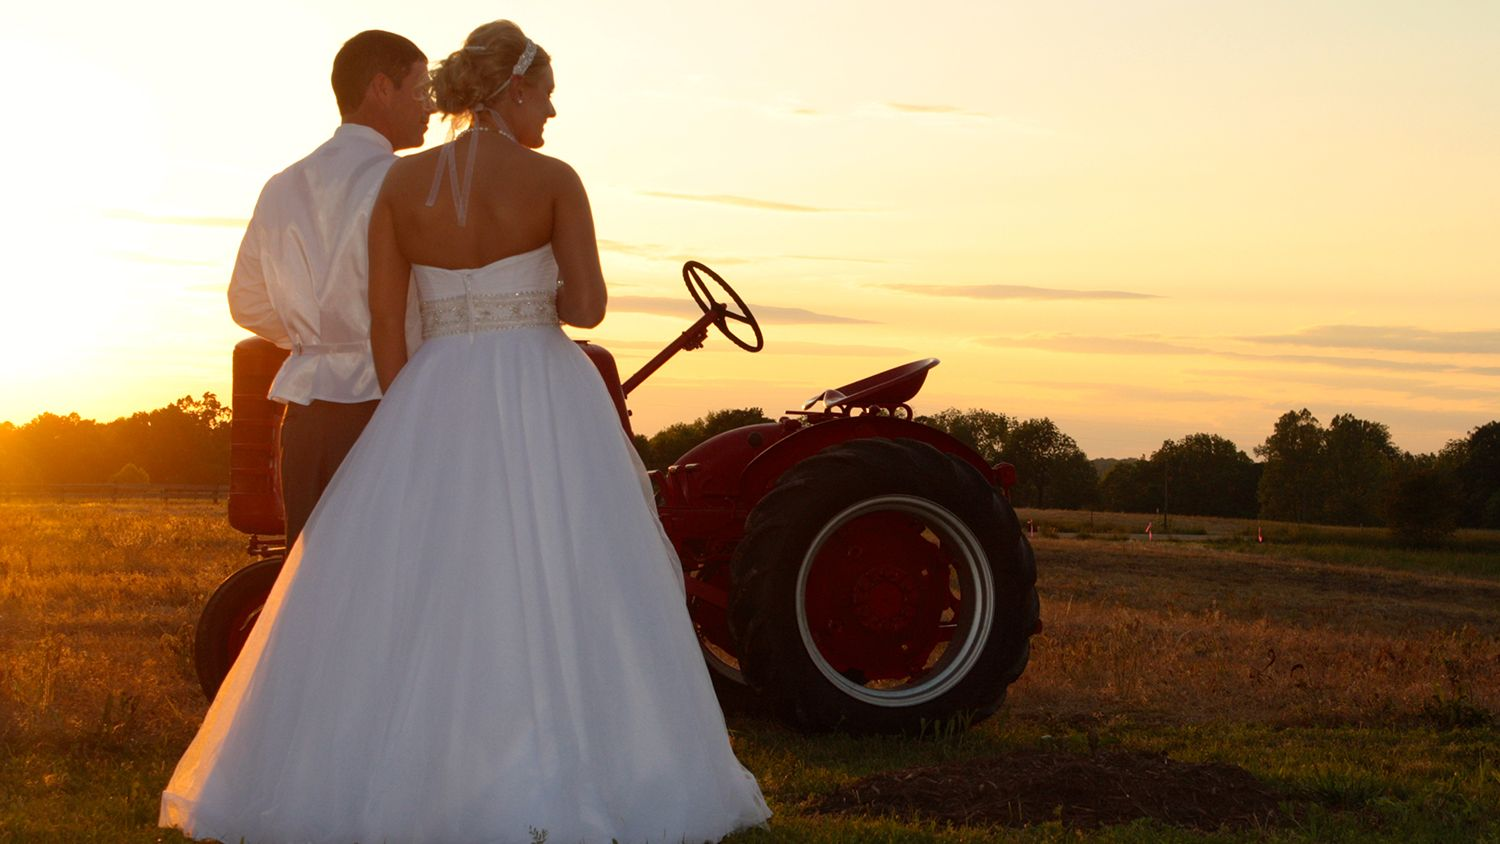 Bride And Groom Red Tractor With Sunset